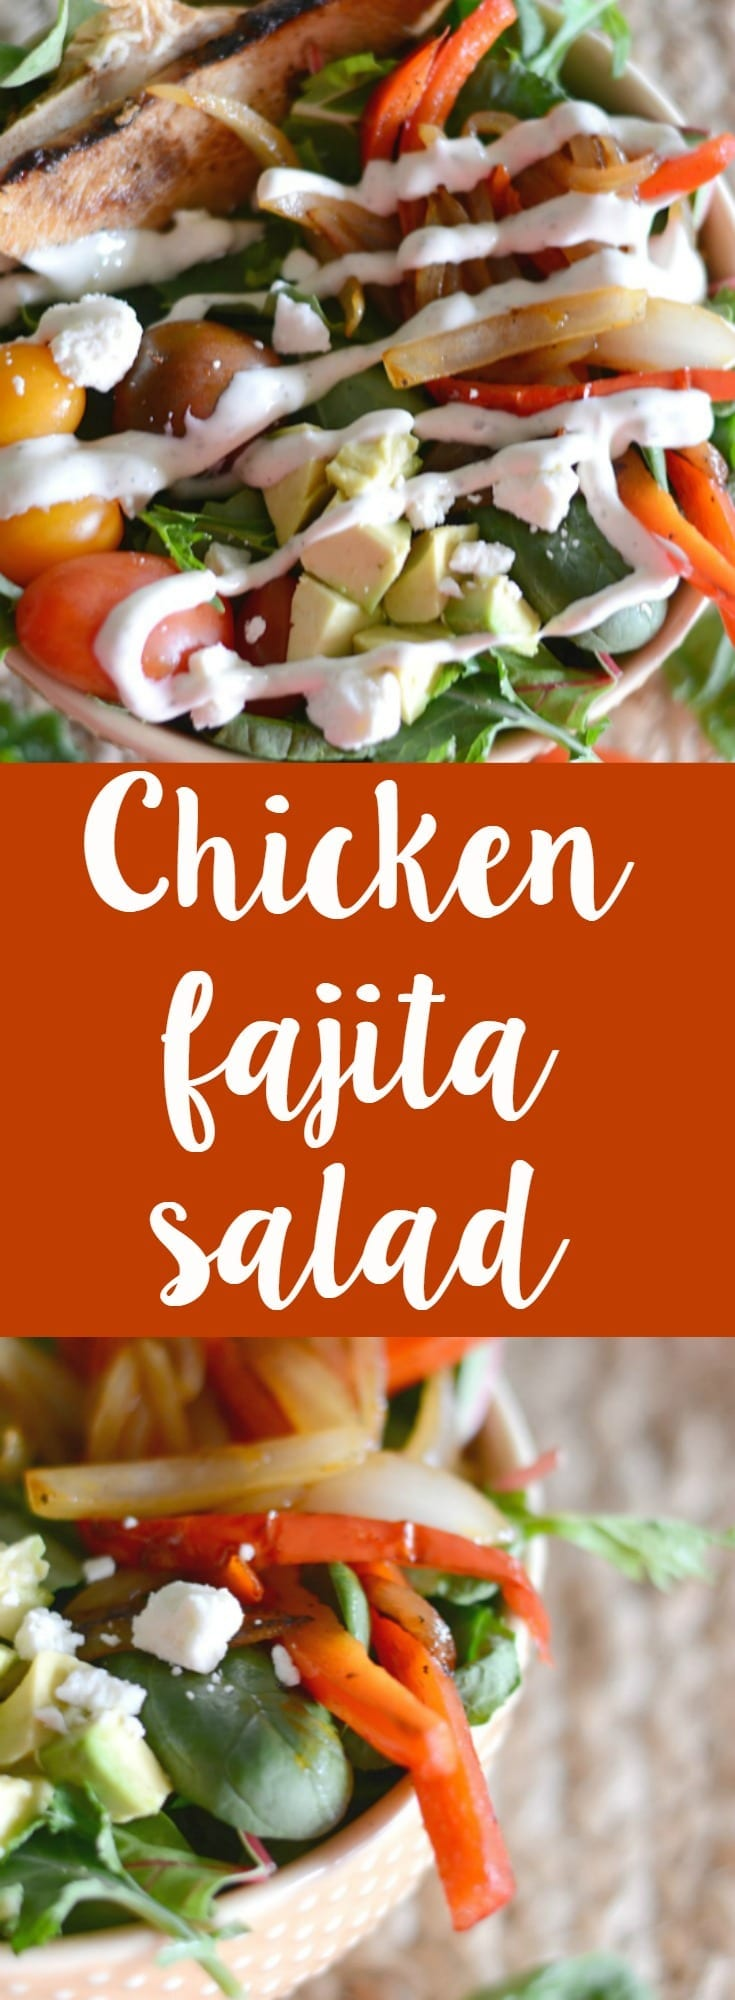 Homemade chicken fajita salad! This salad is perfect for a busy weeknight and is loaded with flavor!